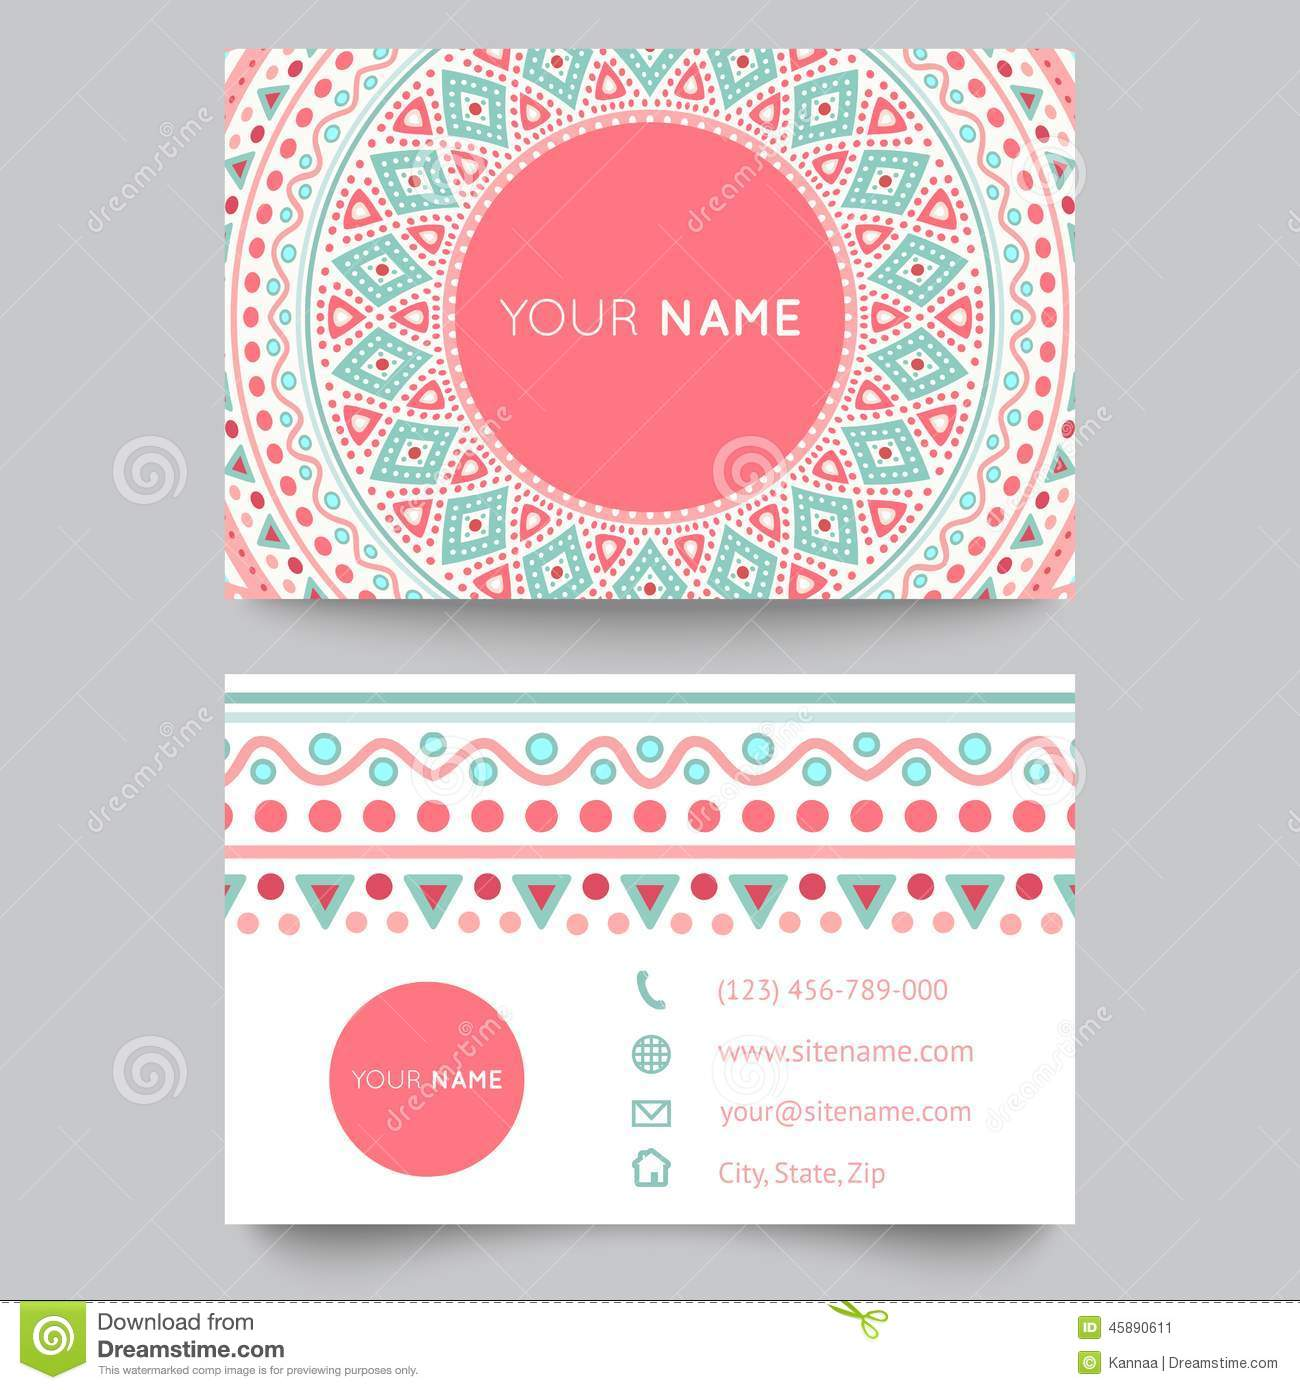 Business card template blue white and pink stock vector download business card template blue white and pink stock vector illustration of background colourmoves